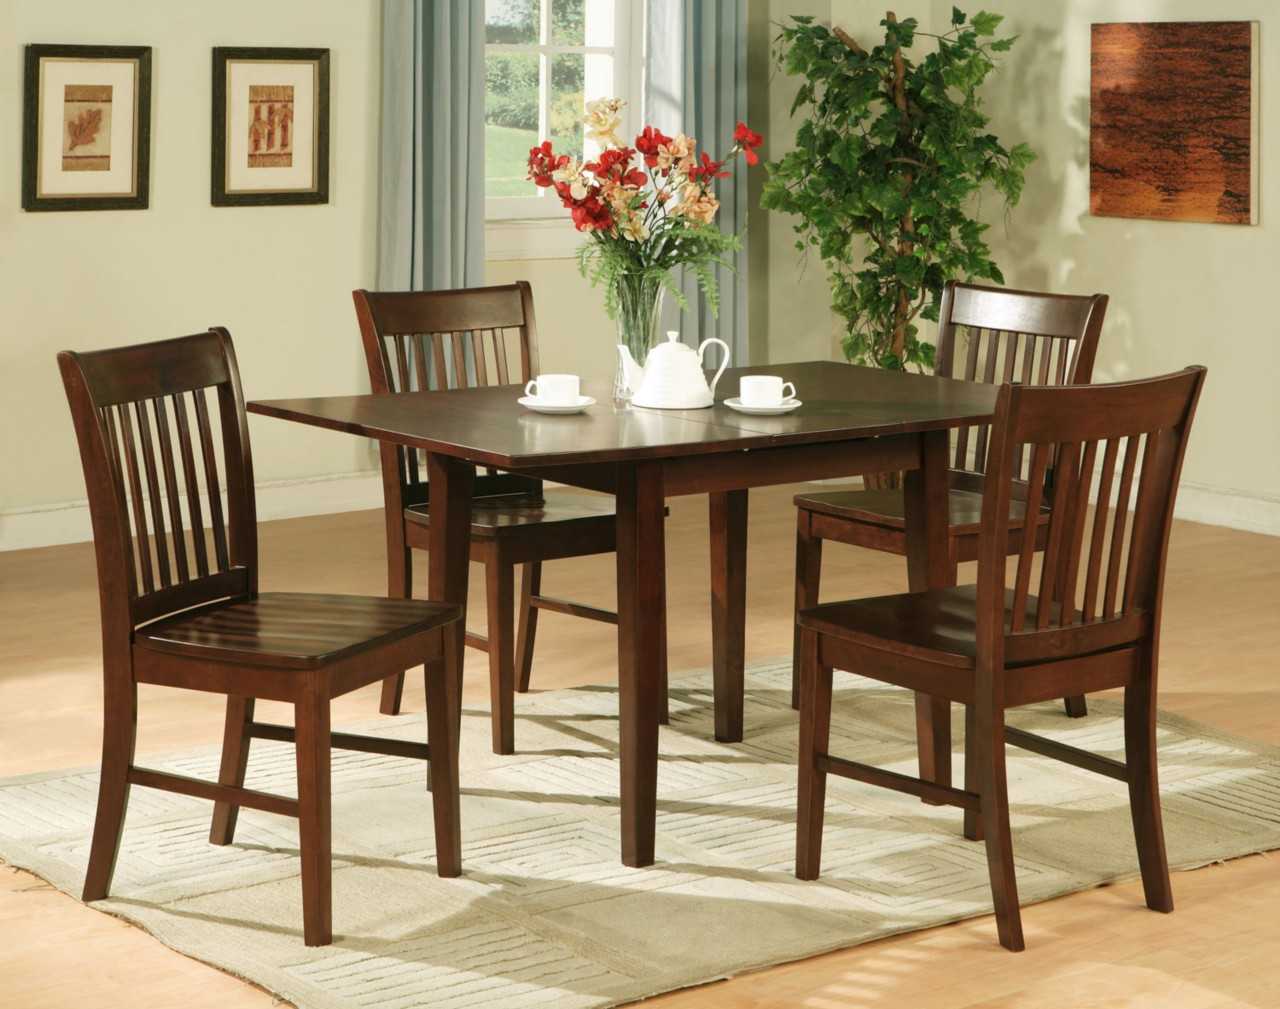 5pc Rectangular Kitchen Dinette Table 4 Chairs Mahogany Ebay